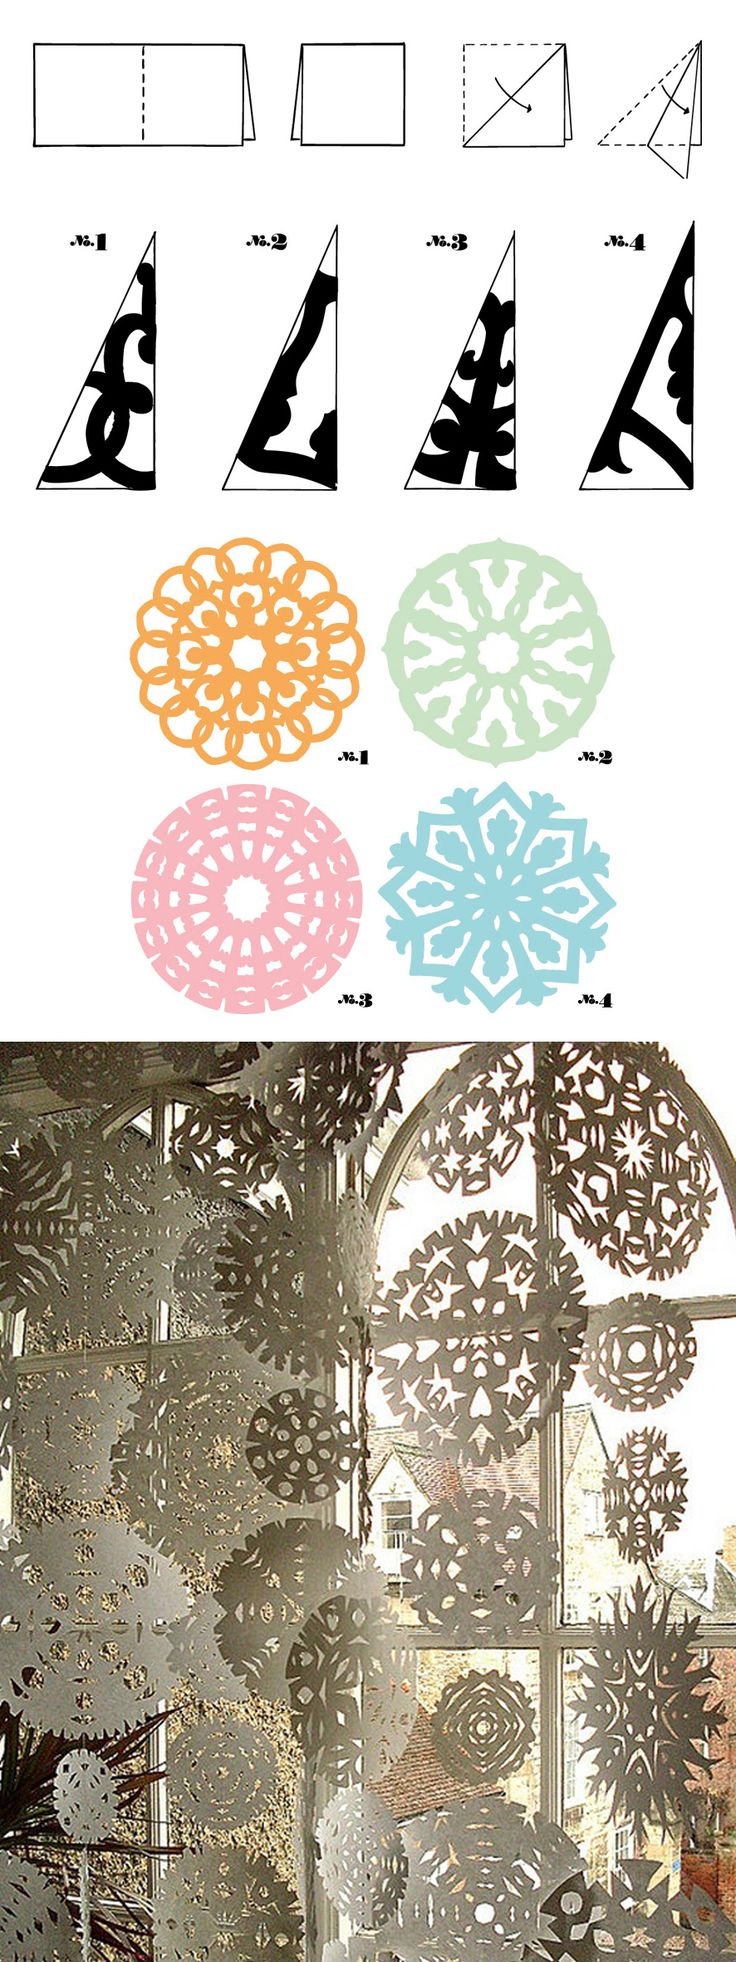 Como hacer copos de nieve de papel/ As making paper snowflakes #recycle design …